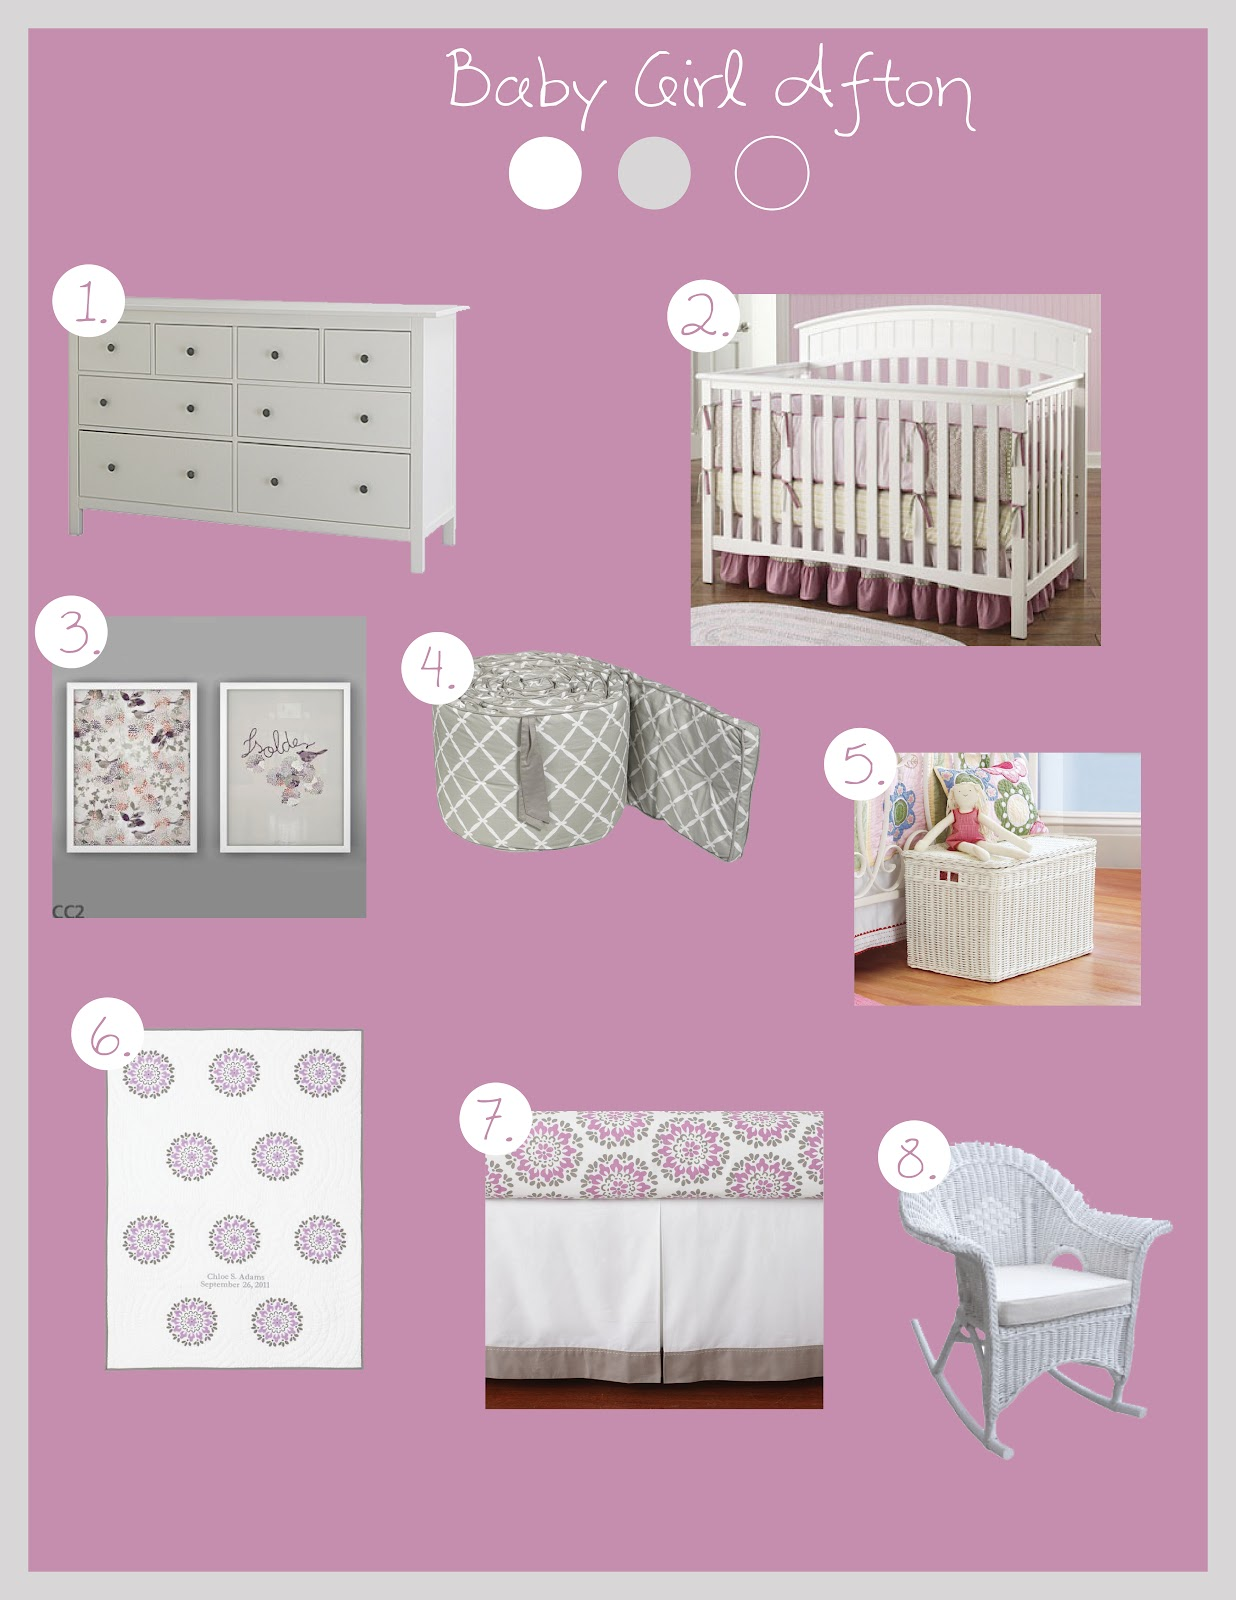 Our Little Poppy Seed Baby Afton S Room